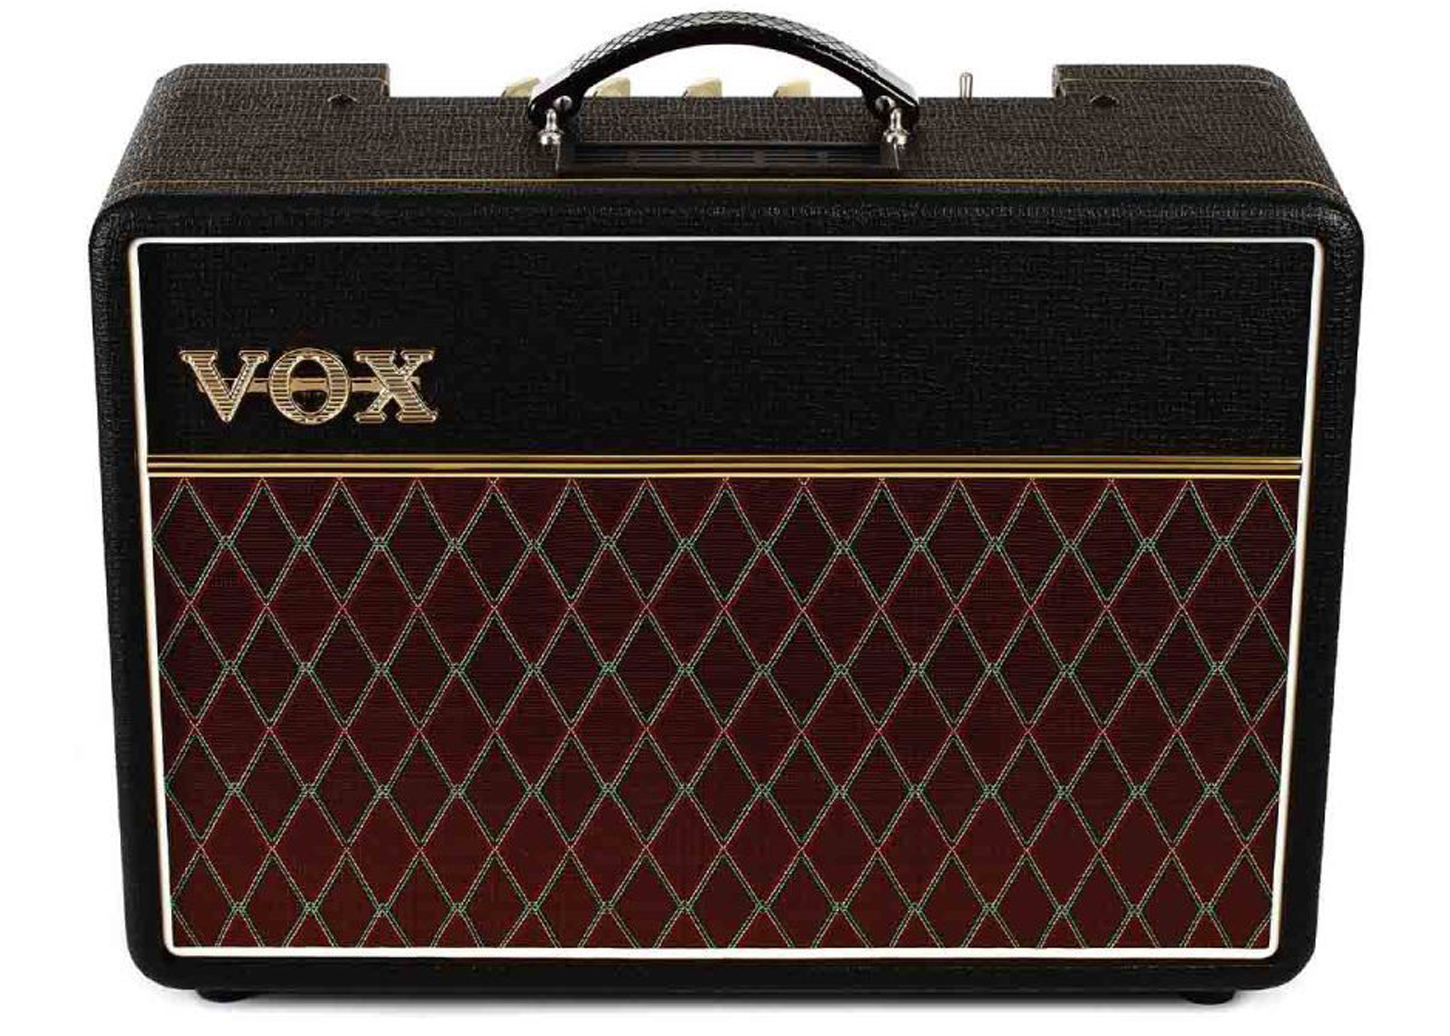 vox ac10c1 10w 1x10 tube guitar combo amp music machine musical instruments nz guitars nz. Black Bedroom Furniture Sets. Home Design Ideas